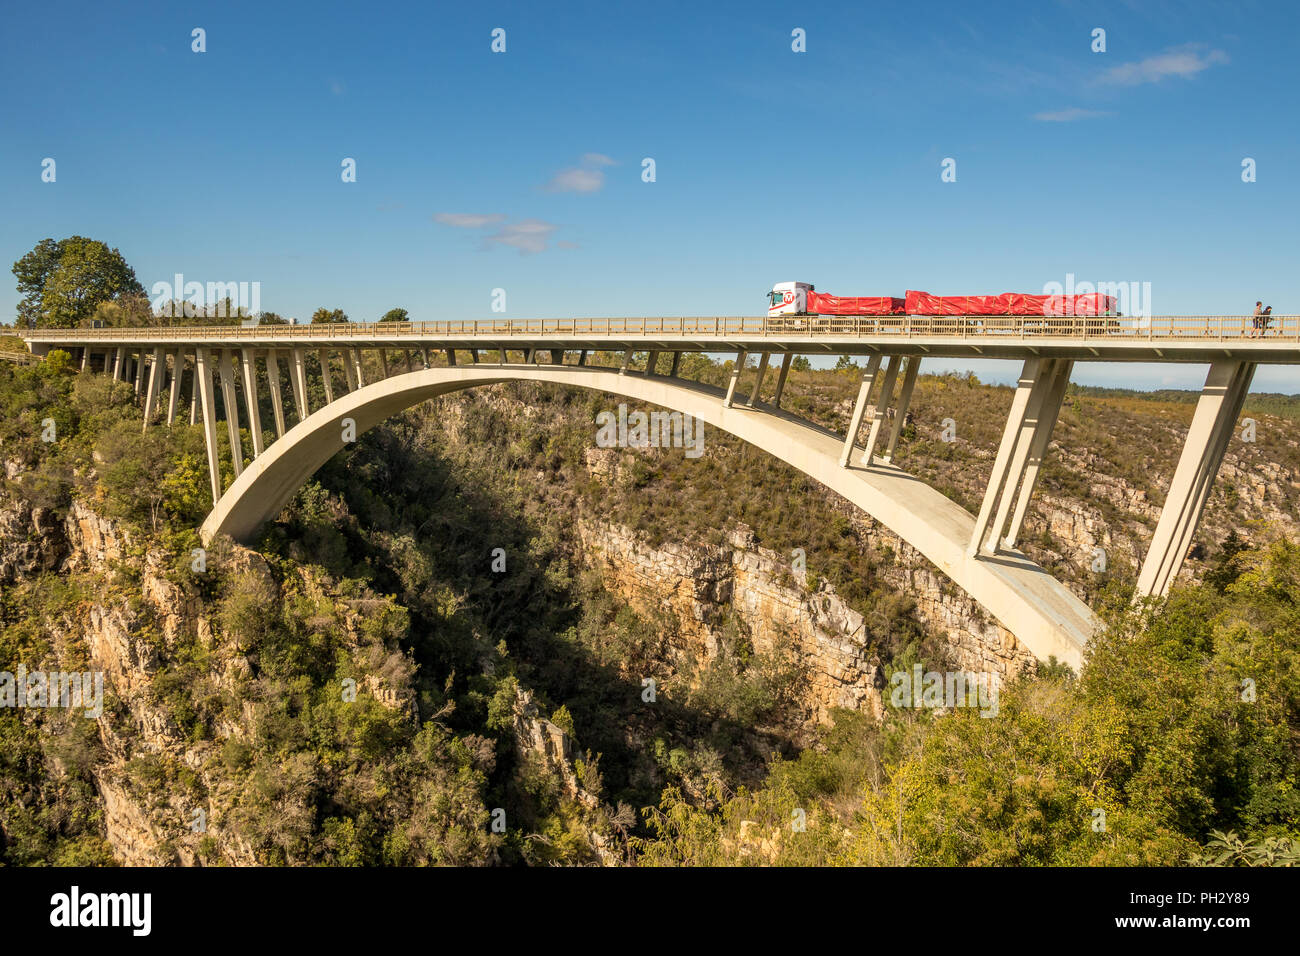 Tsitsikamma, South Africa - the Paul Sauer Bridge also known as the Storms River Bridge over the Storms River on the garden route Stock Photo